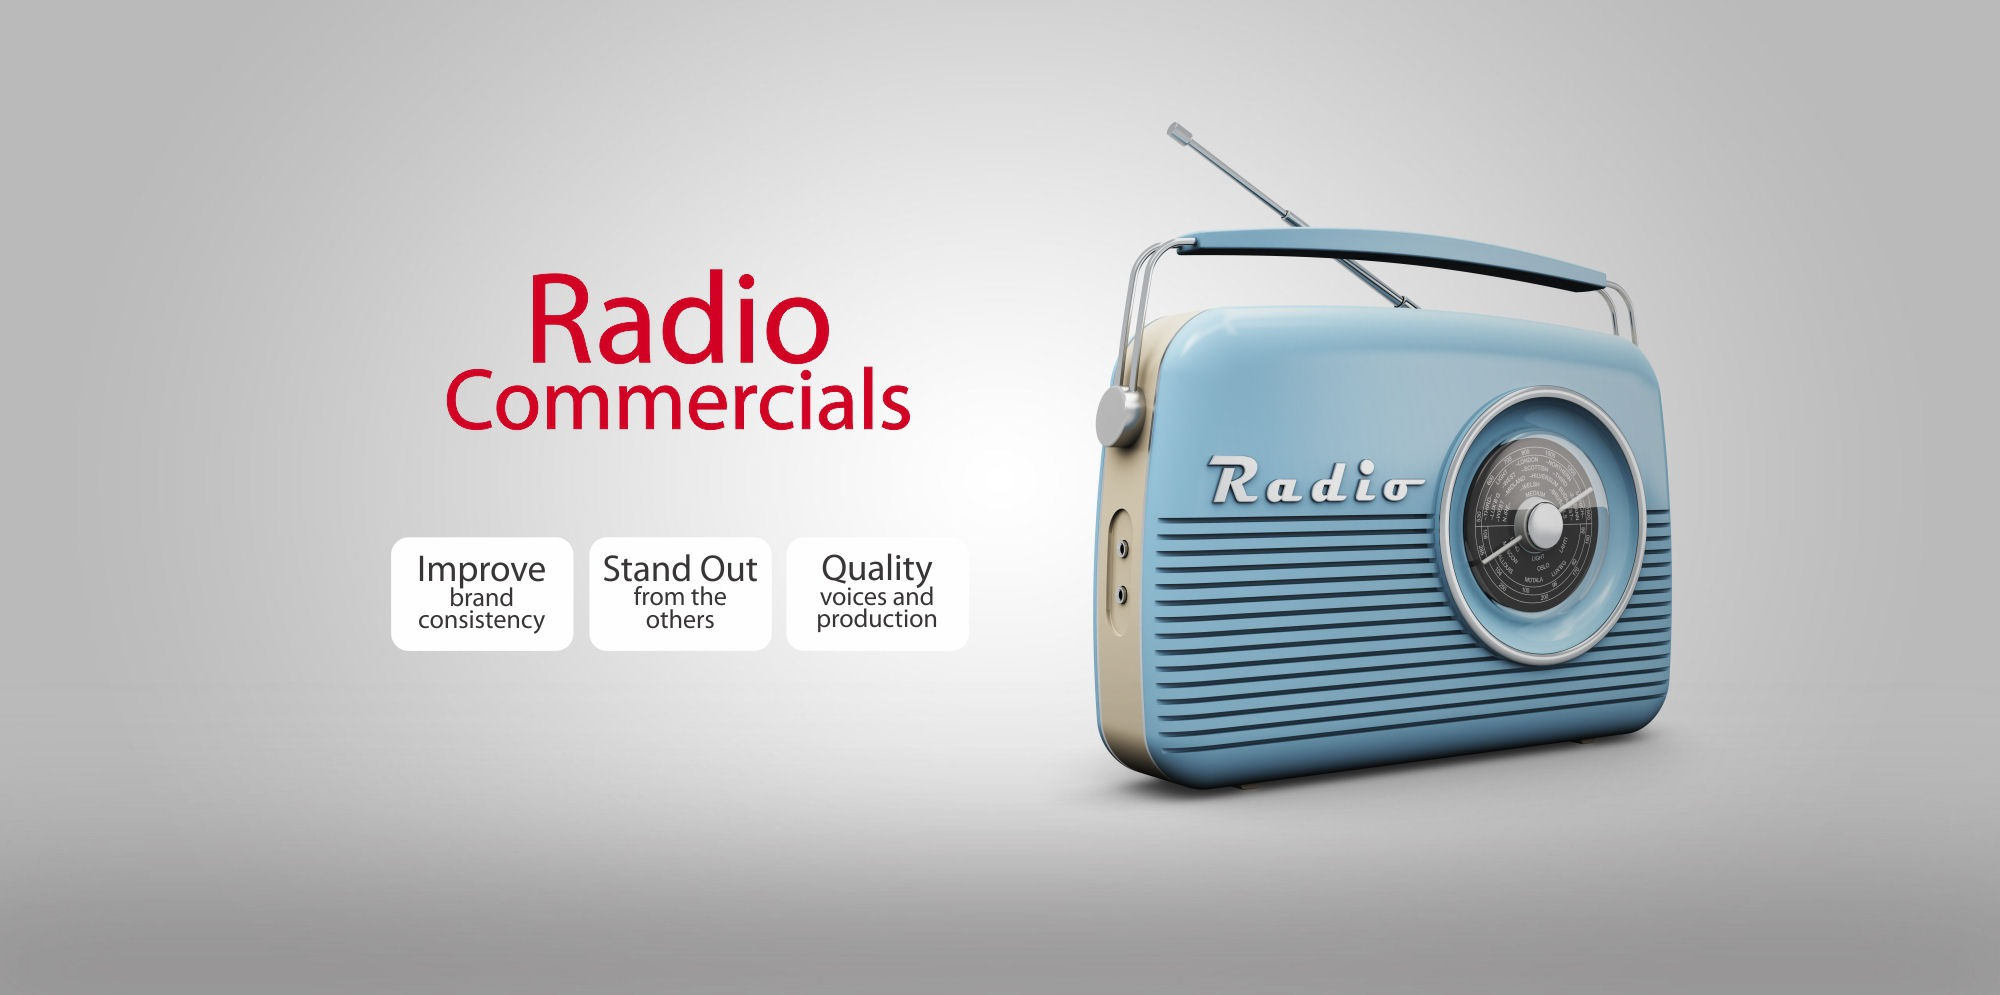 Radio Commercials Hold Please Communications